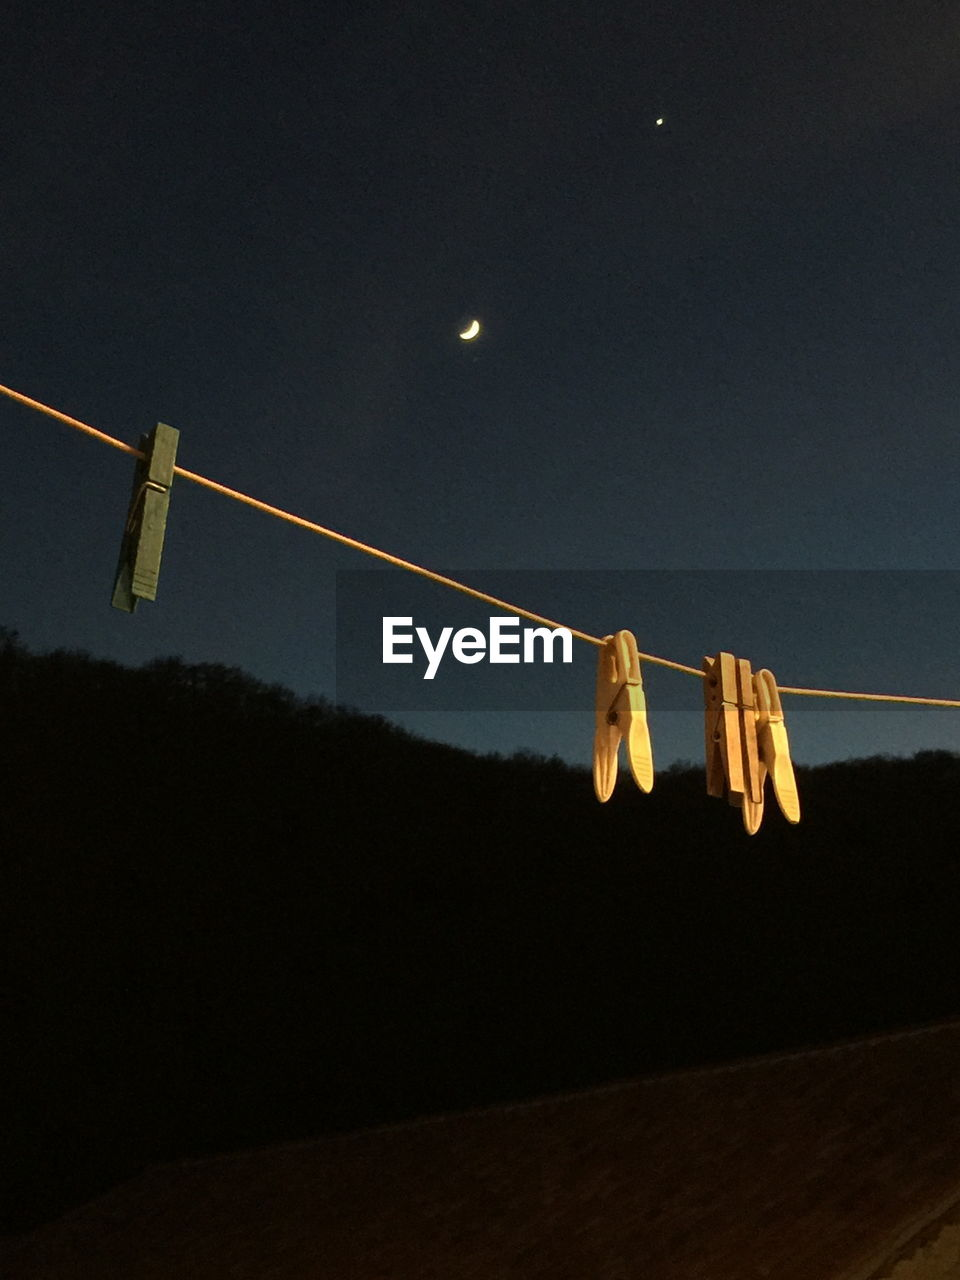 Low Angle View Of Clothespin Hanging On Rope Against Sky At Night